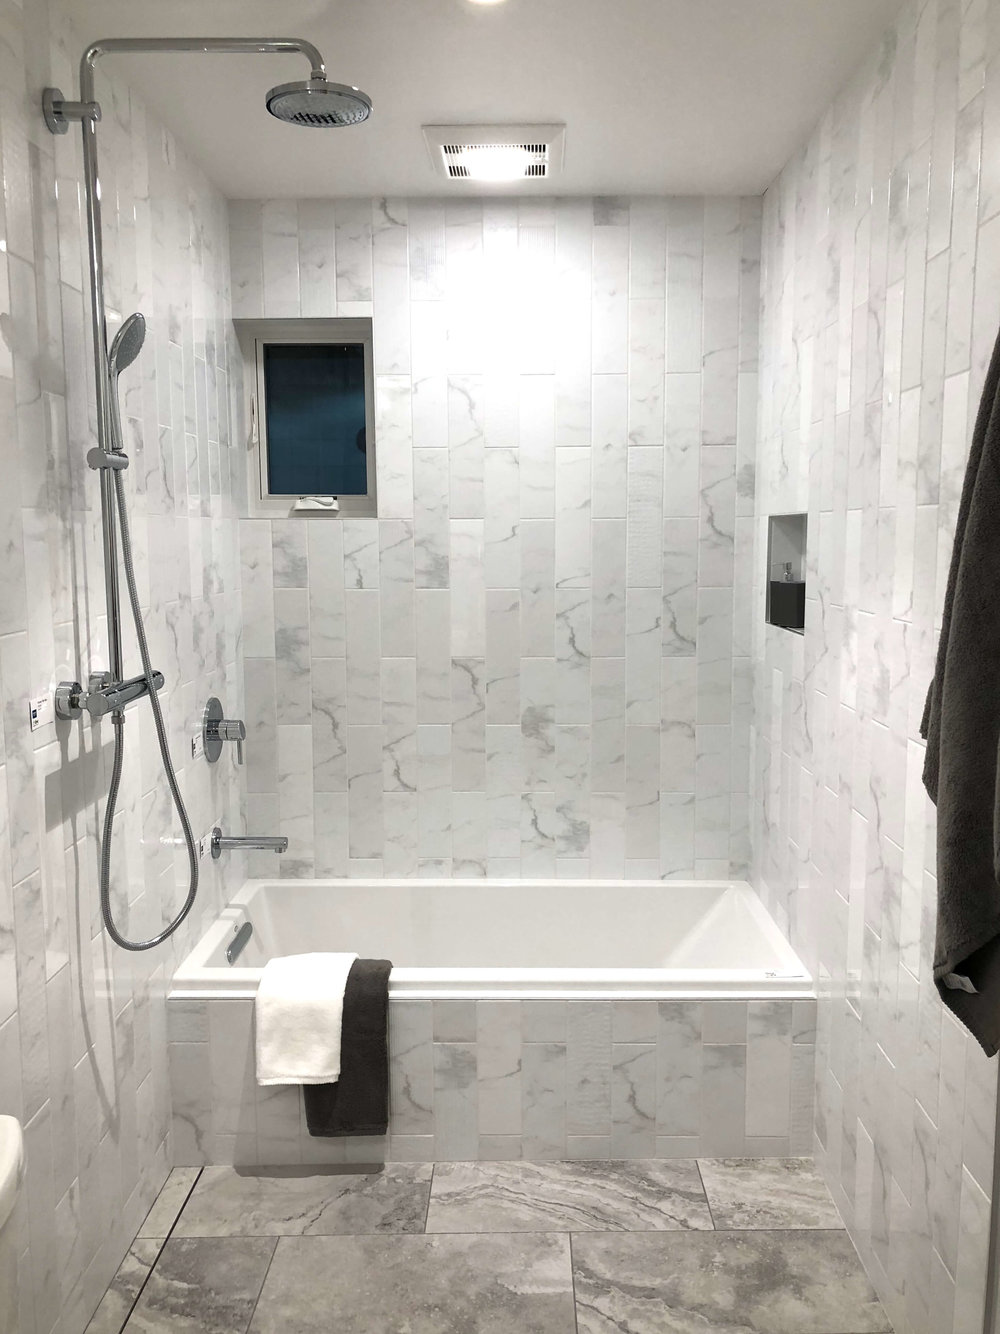 Pre-fab modular home by Method Home with marble tile luxury bathroom #prefabhome #modularhome #marbletile #marblebathroom